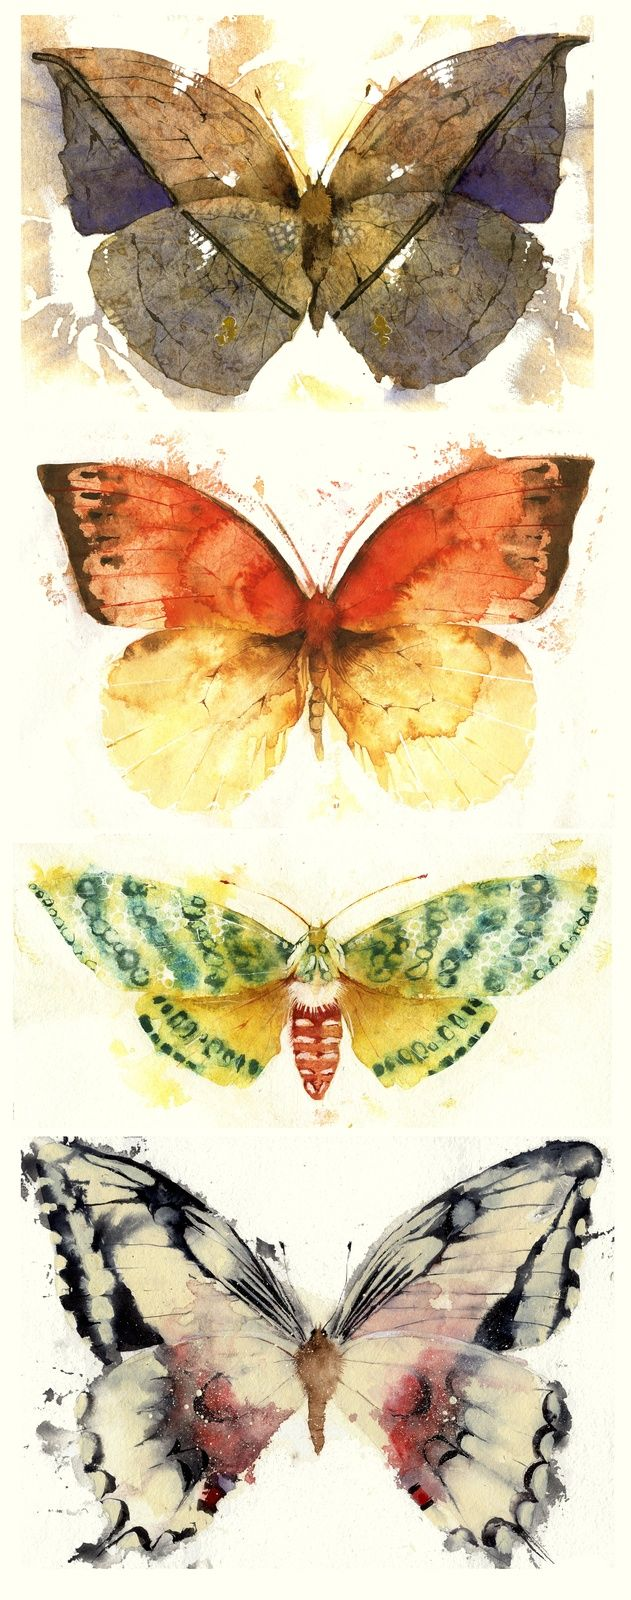 Butterflies and Moths, Giclée print by Kate Osborne | Artfinder